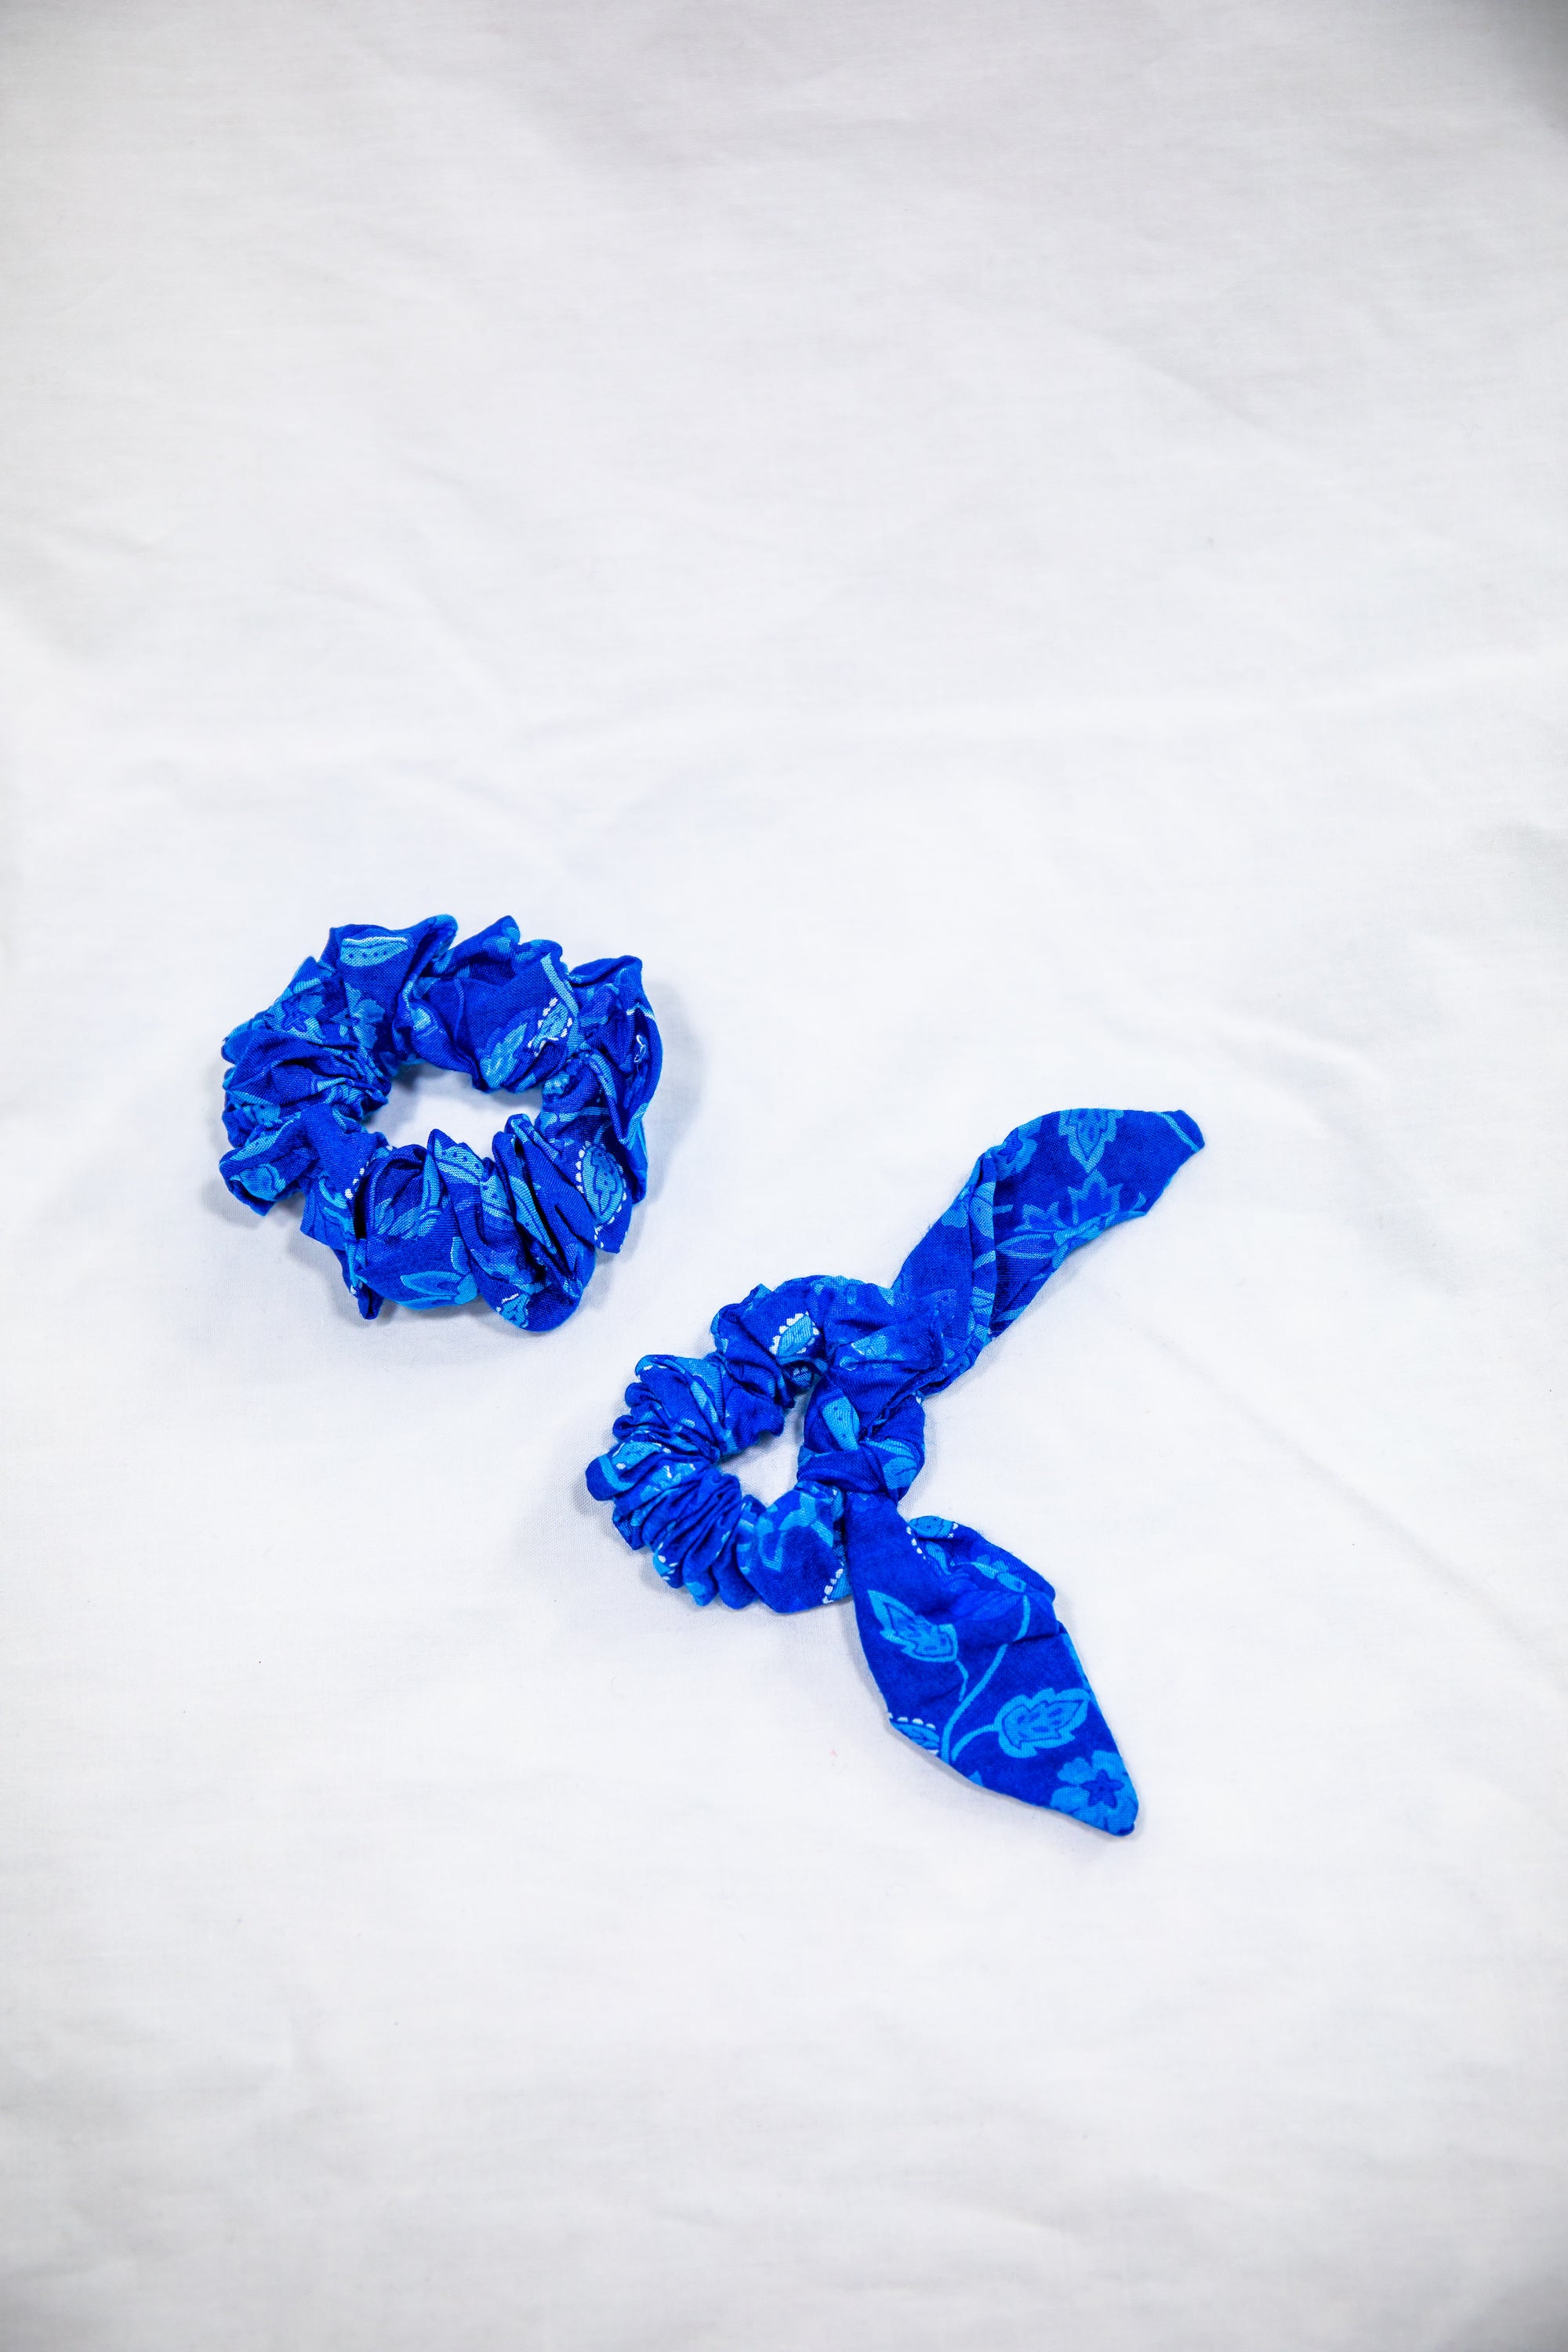 Blue Hawaii 🌊 Hair Scrunchie Set - Saffron Road